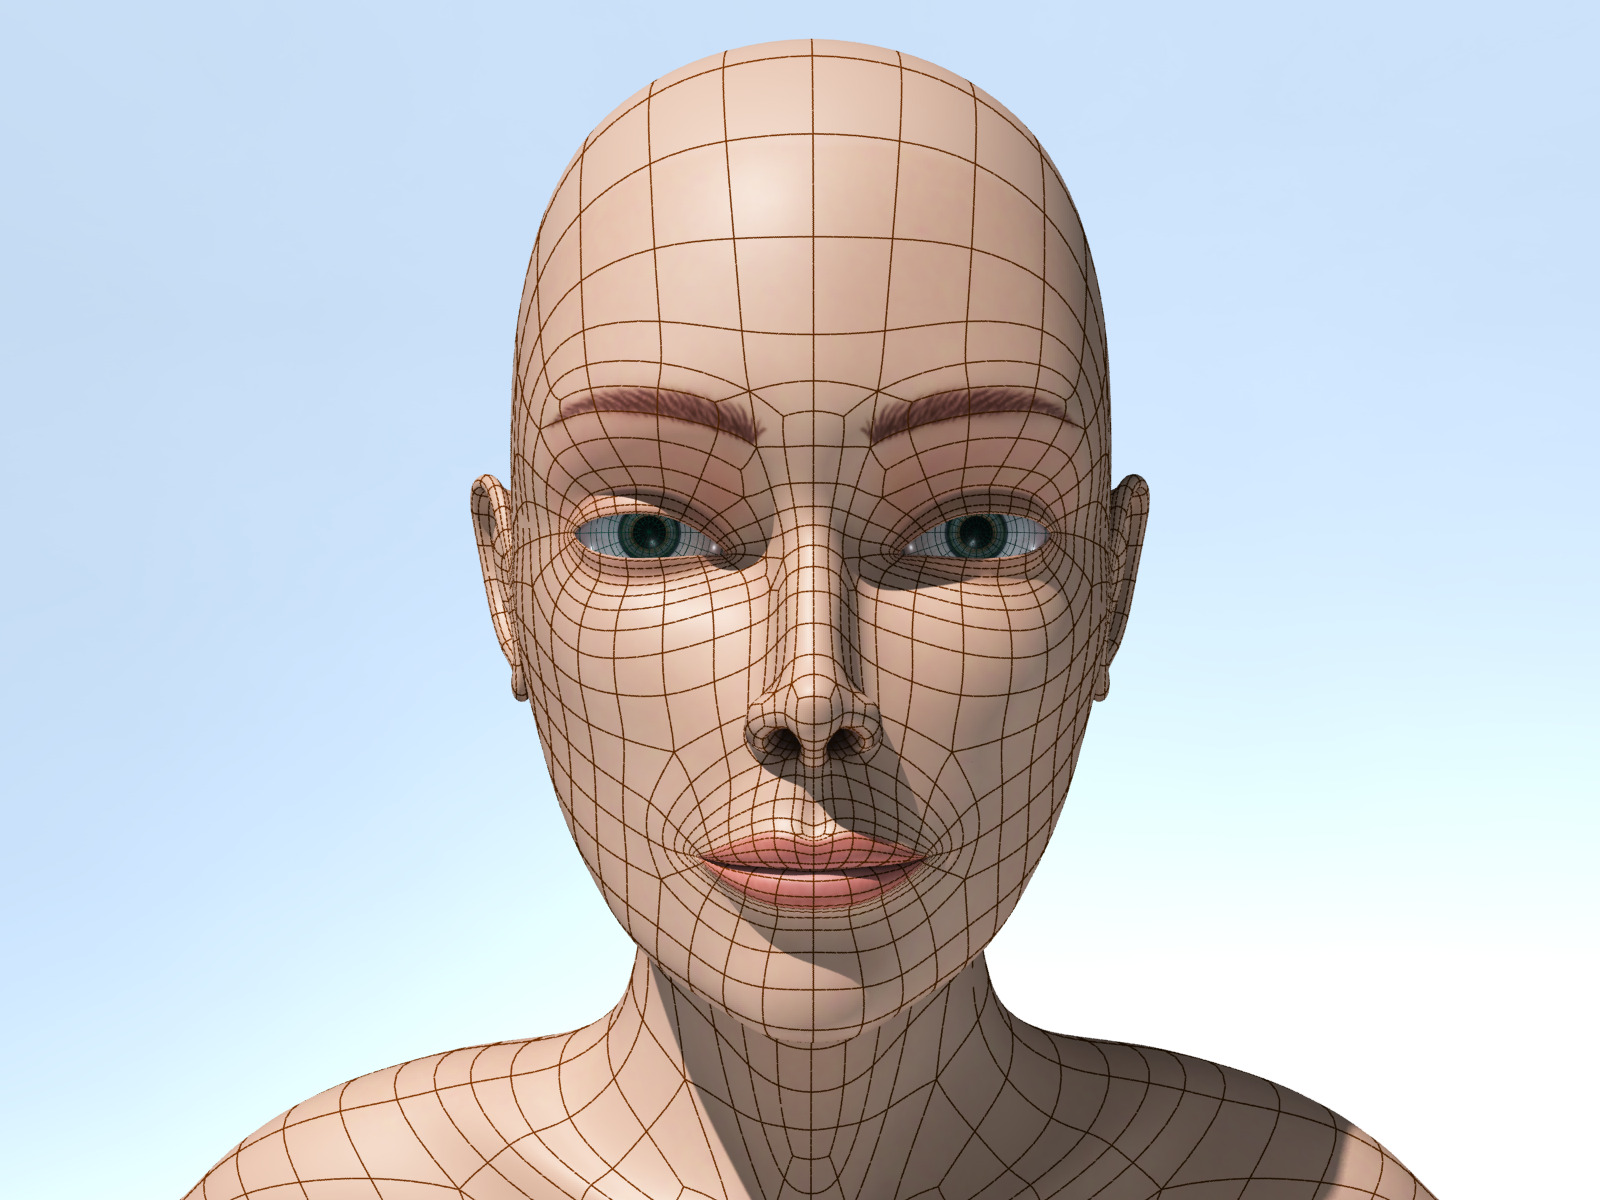 3D Character Wireframe 4 By Ulisses3d On DeviantArt